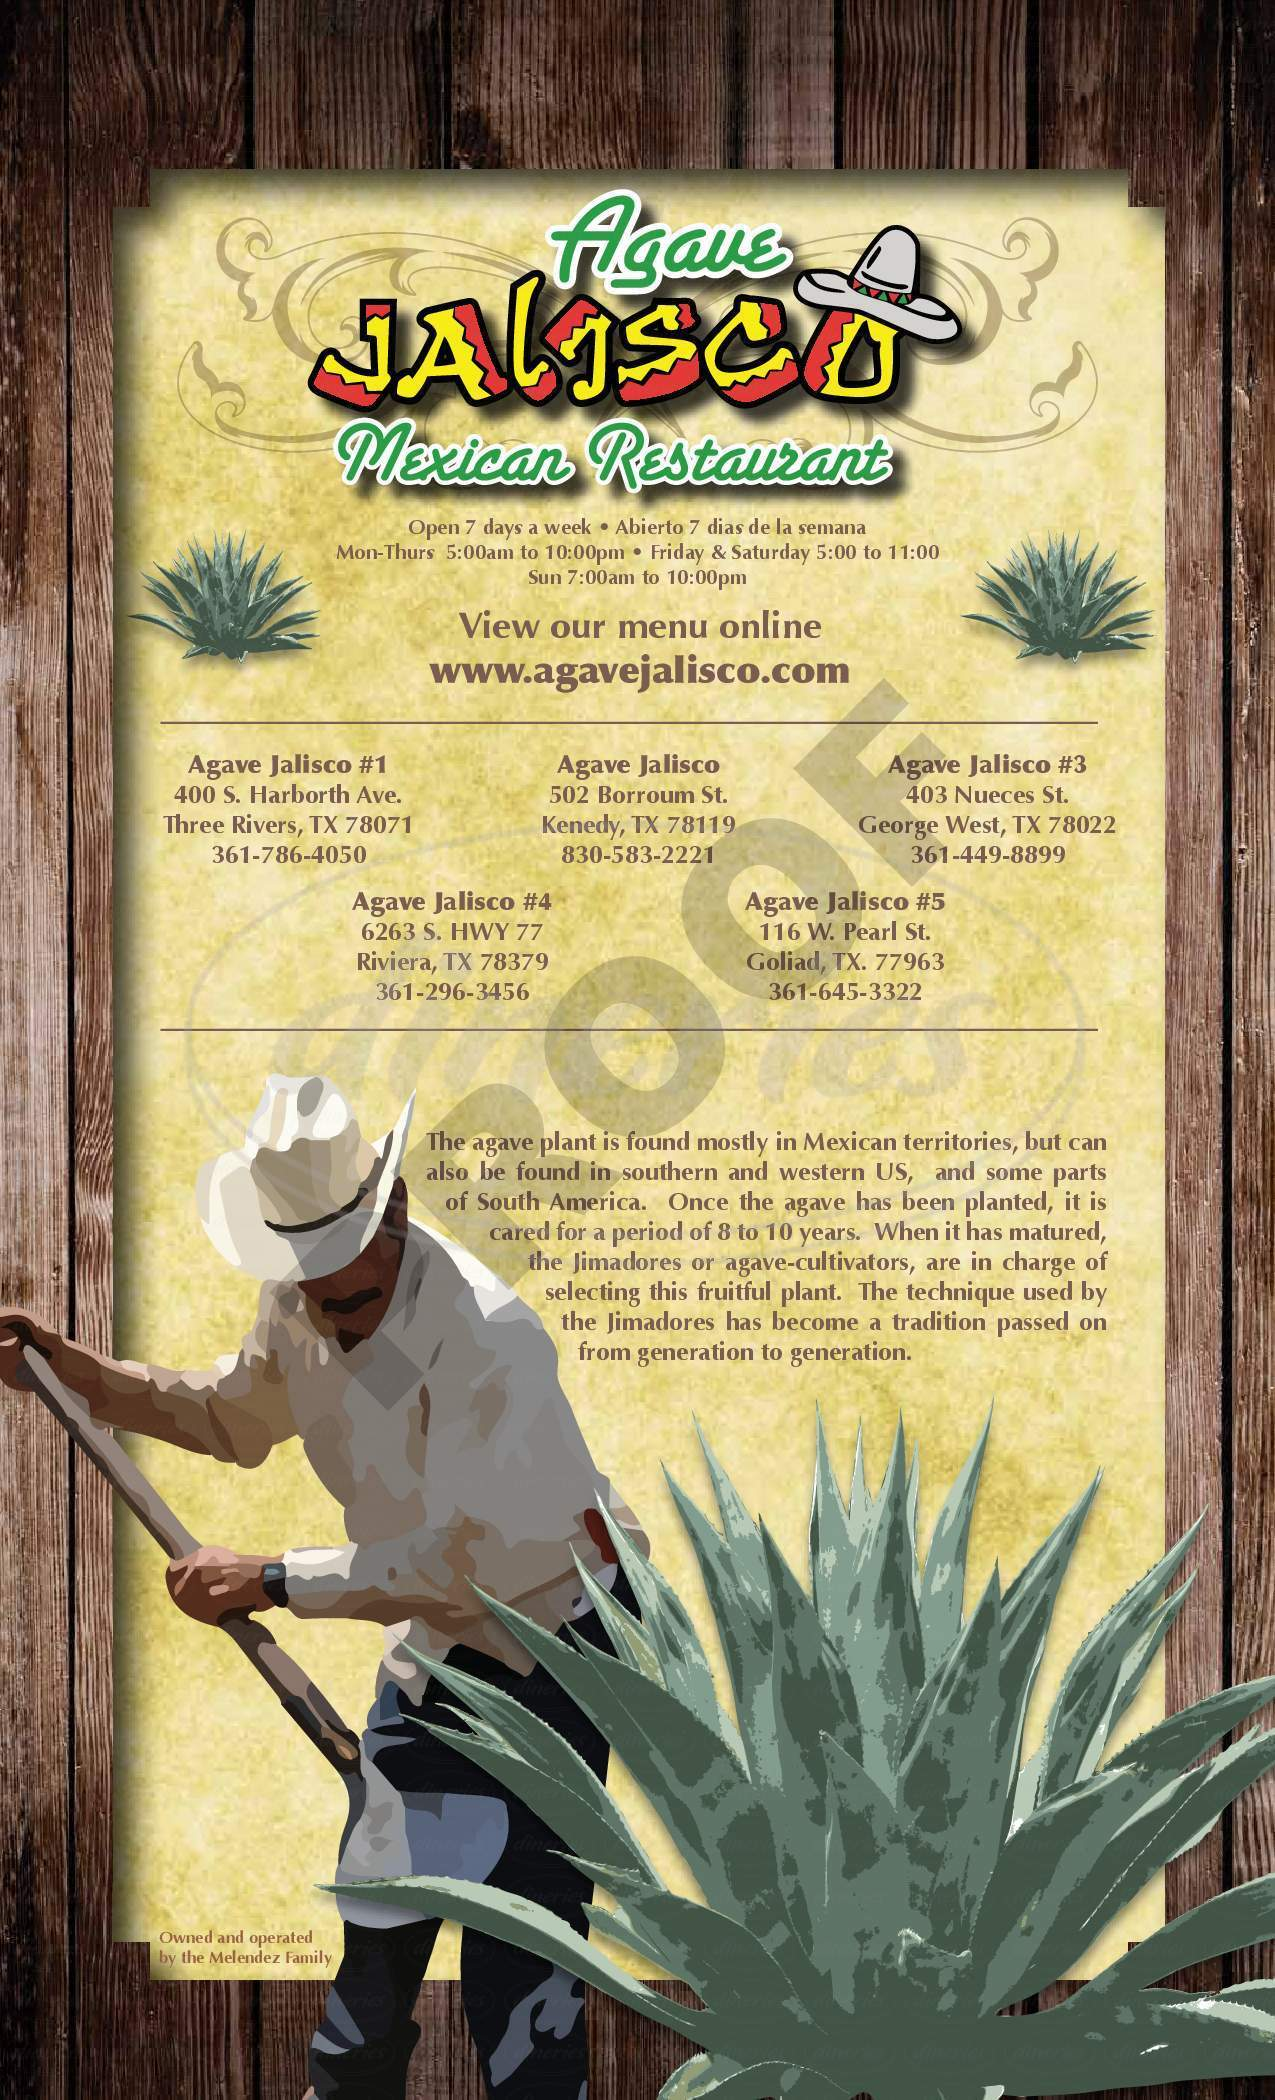 menu for Agave Jalisco